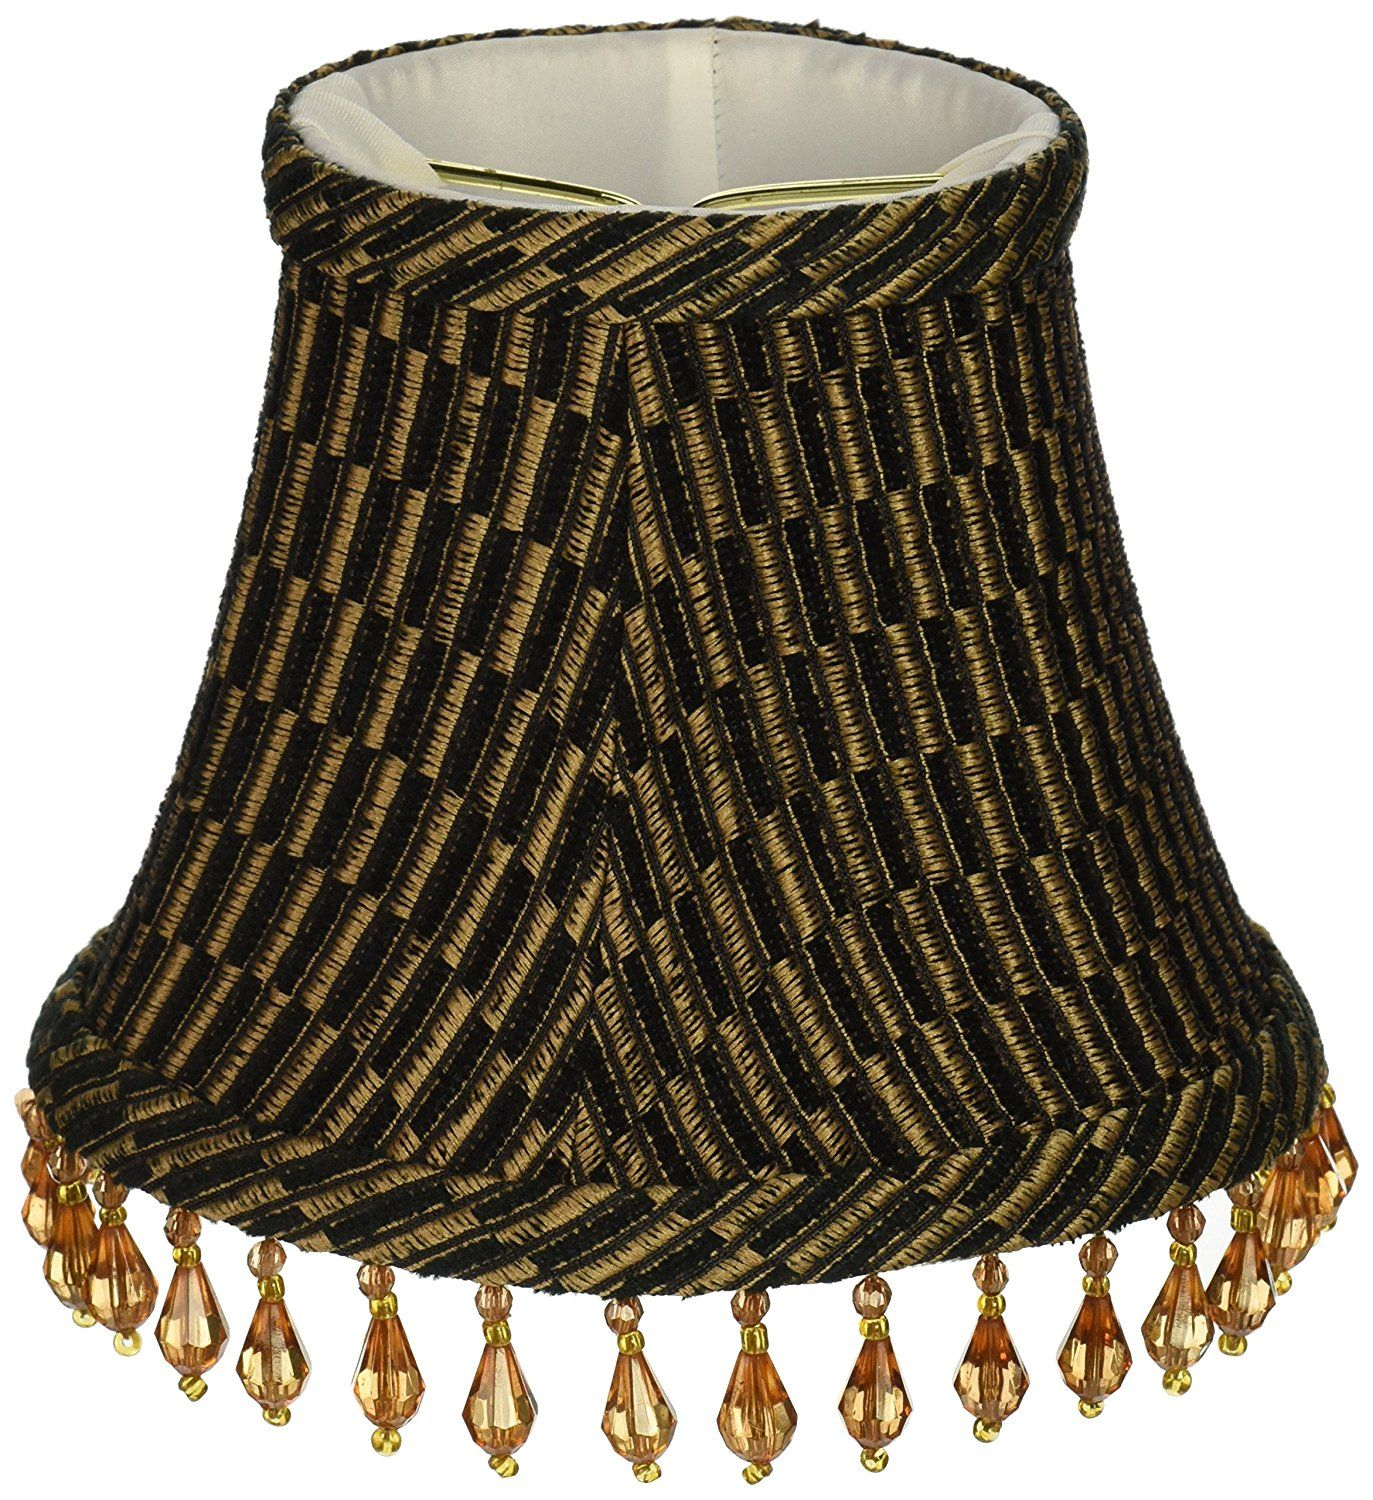 lamp chandelier lamp shades set of 6 barrel shades 5 inch black silk with